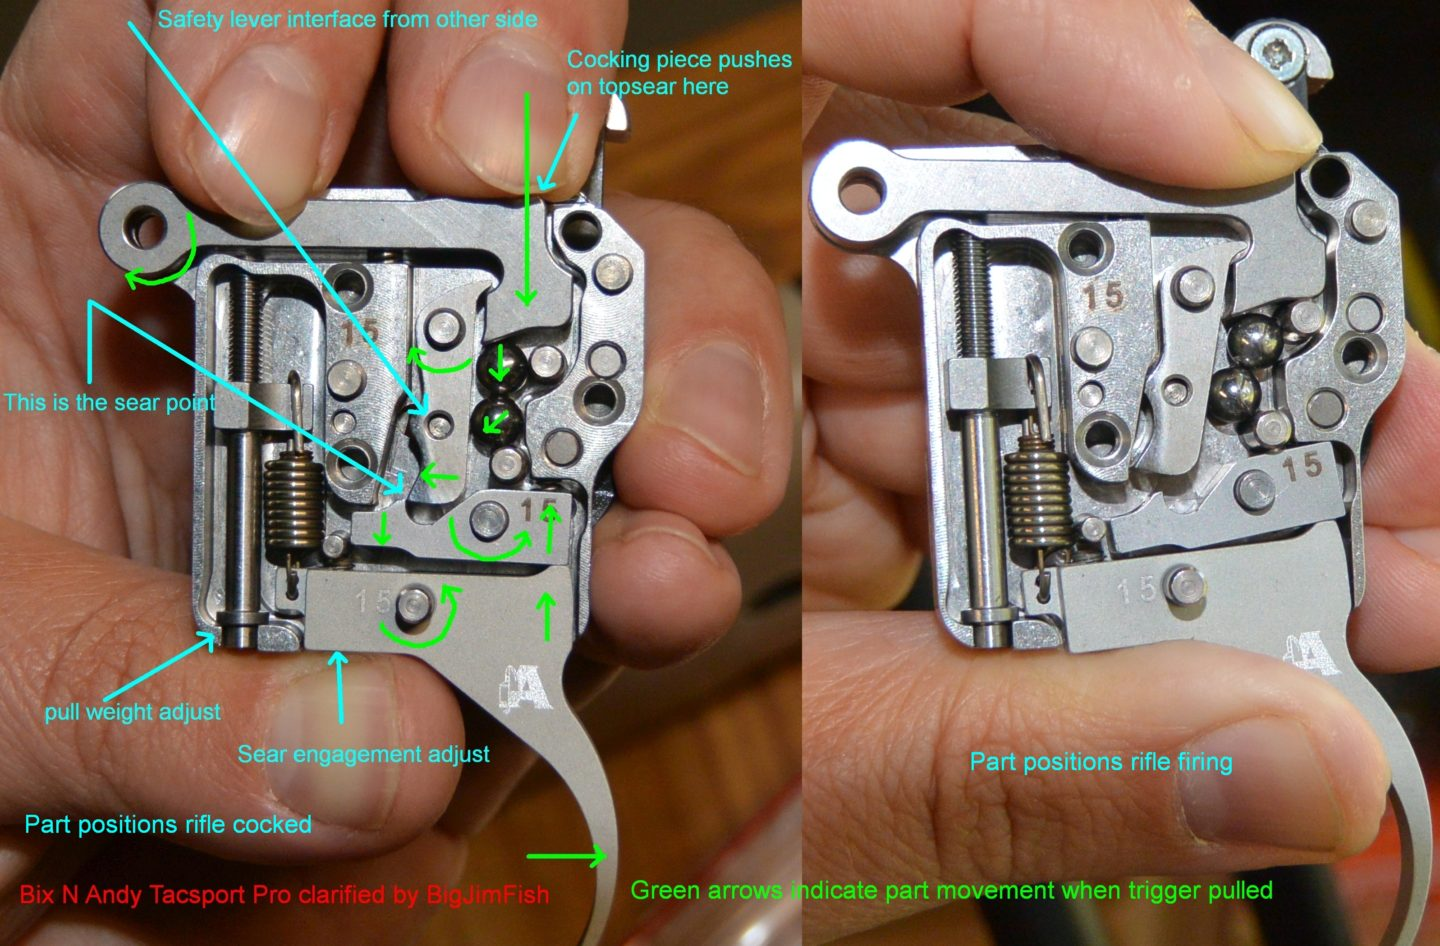 Bix'n Andy Tacsport functional illustration with ready to fire part positions left and mid firing positions right.